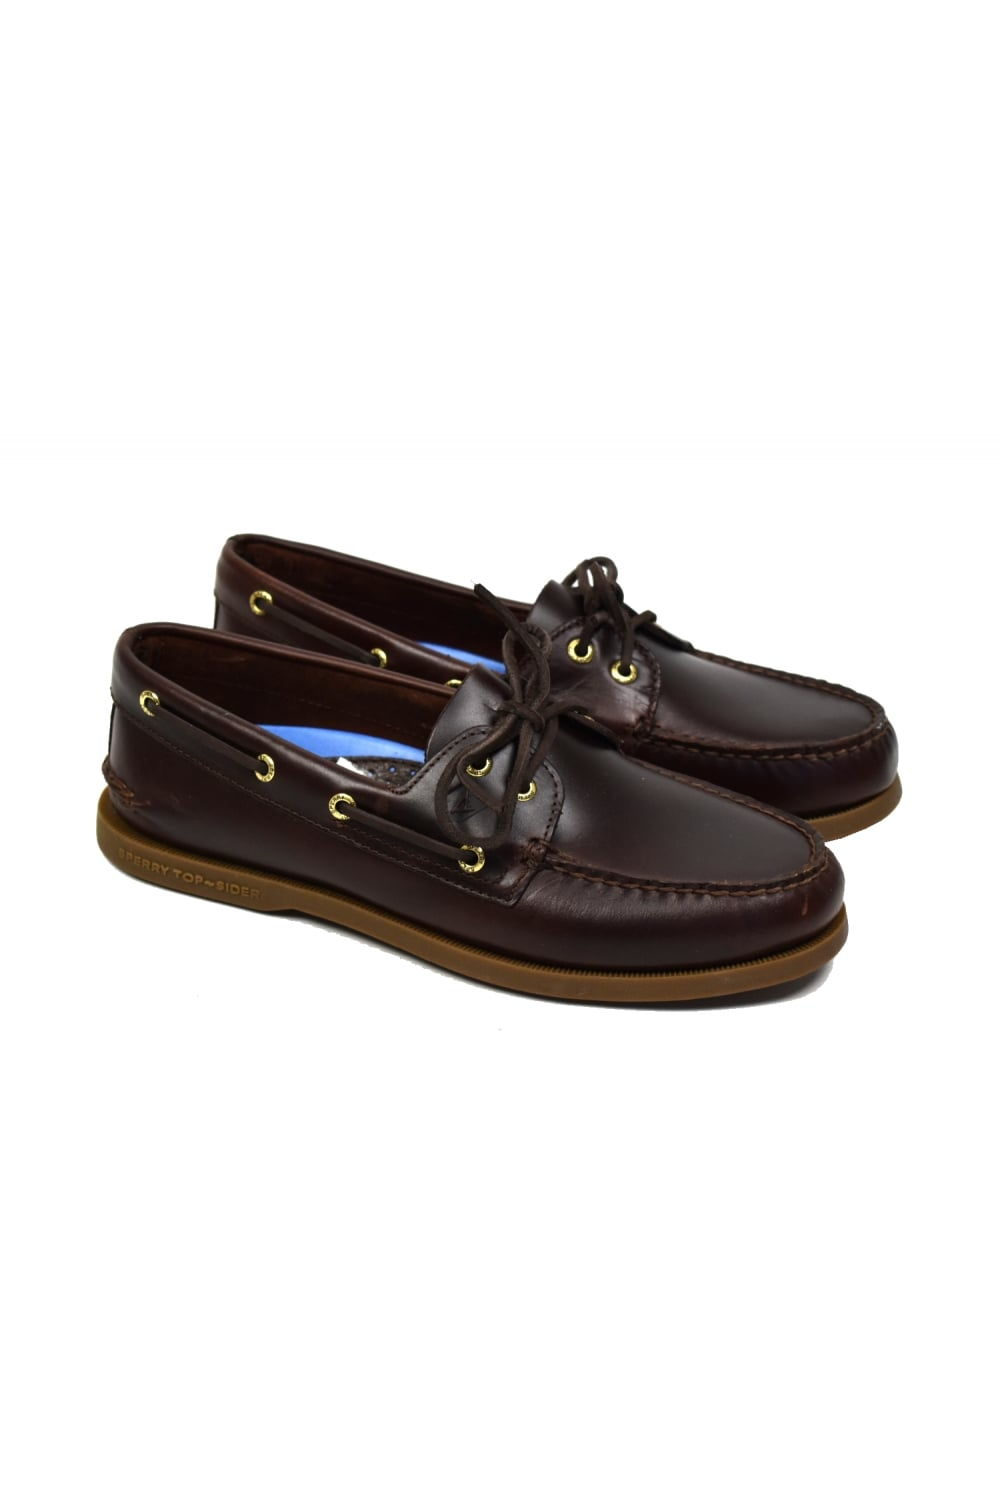 cc8bc9d355 Sperry Top-Sider Authentic Original 2-Eye Men s Boat Shoe (Amaretto ...